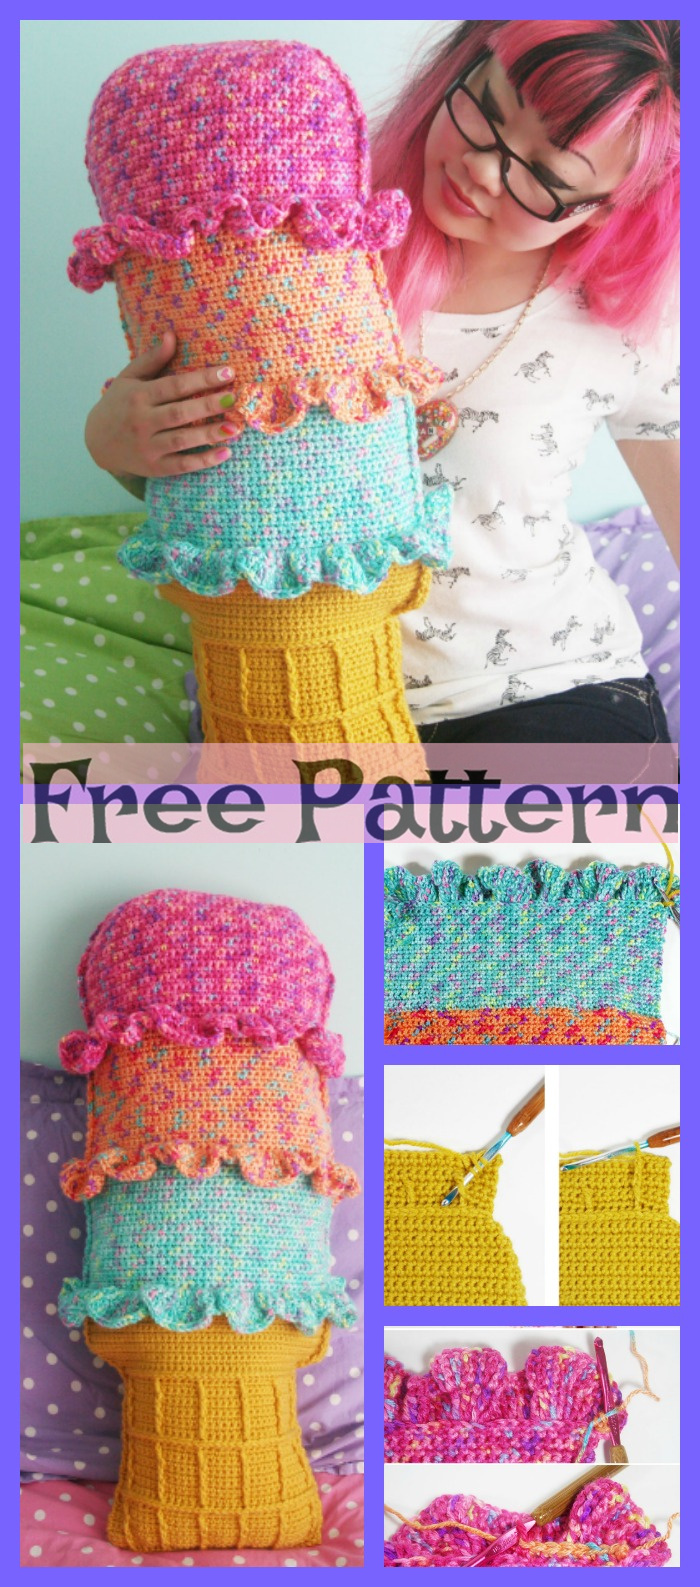 Crochet Rainbow Pillows - Free Patterns P1